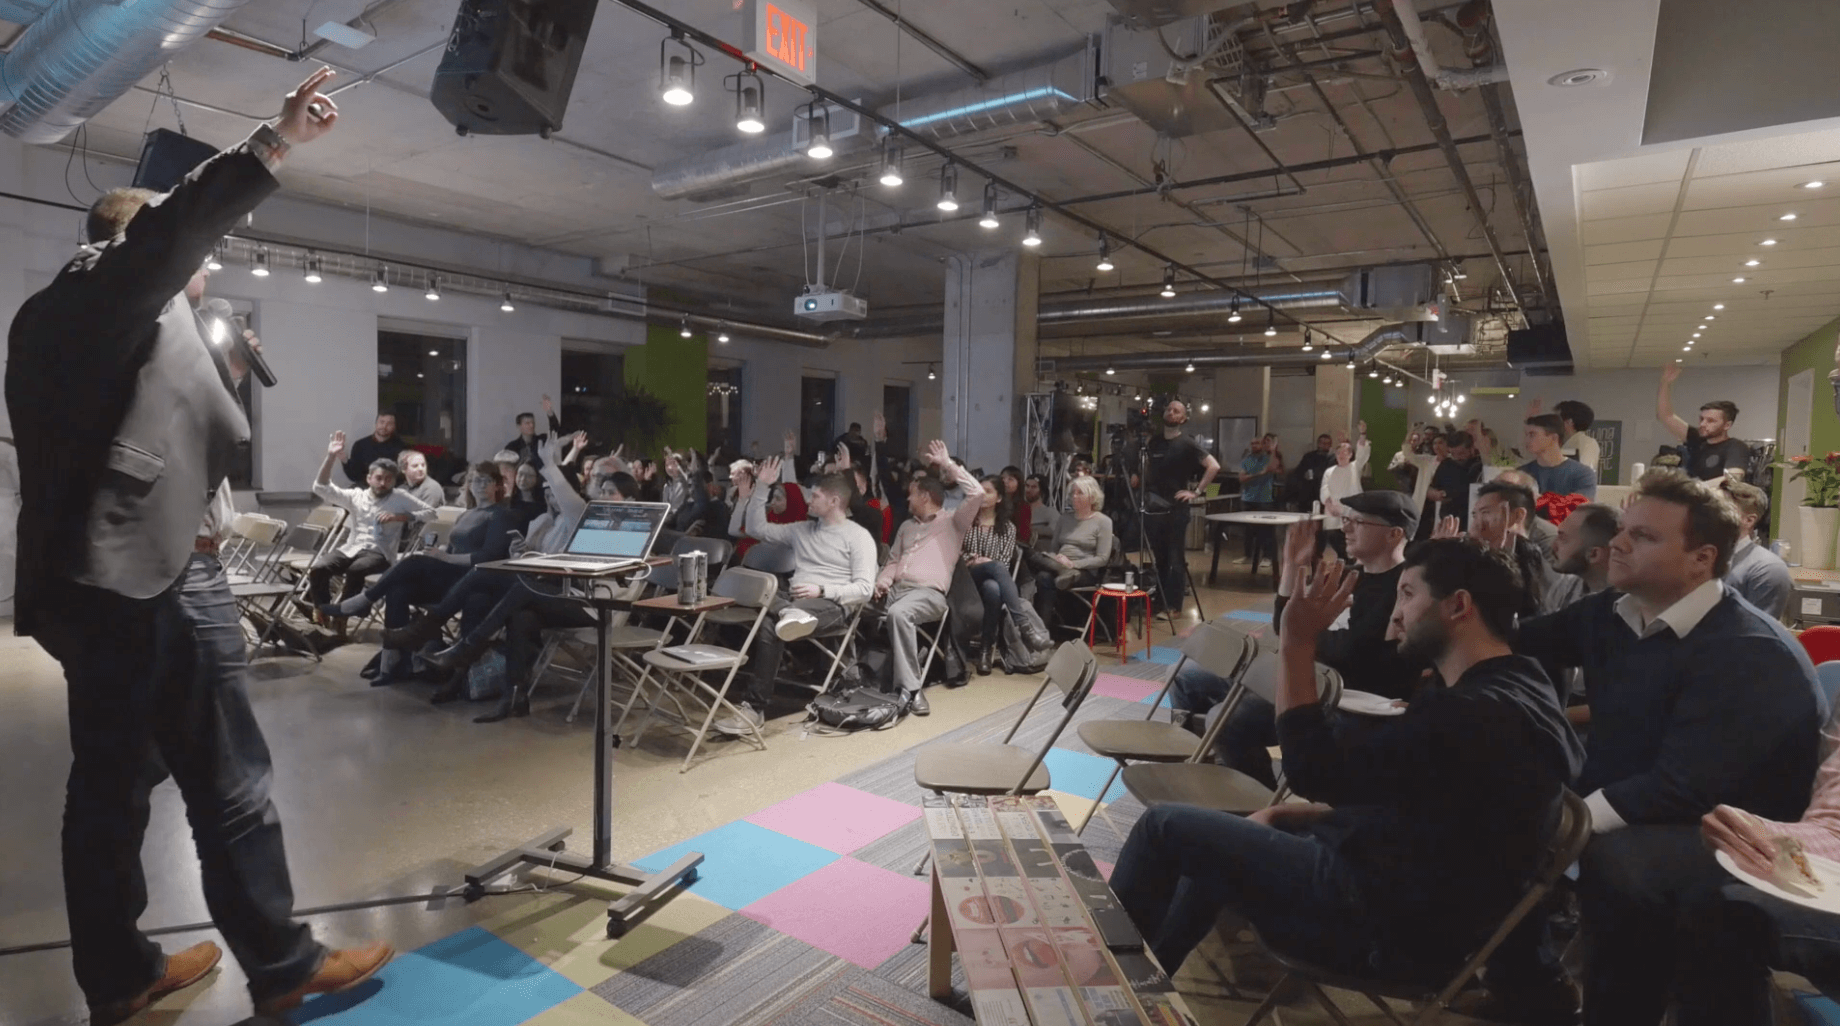 Johnathan Nightingale speaks at a Toronto ProductTank